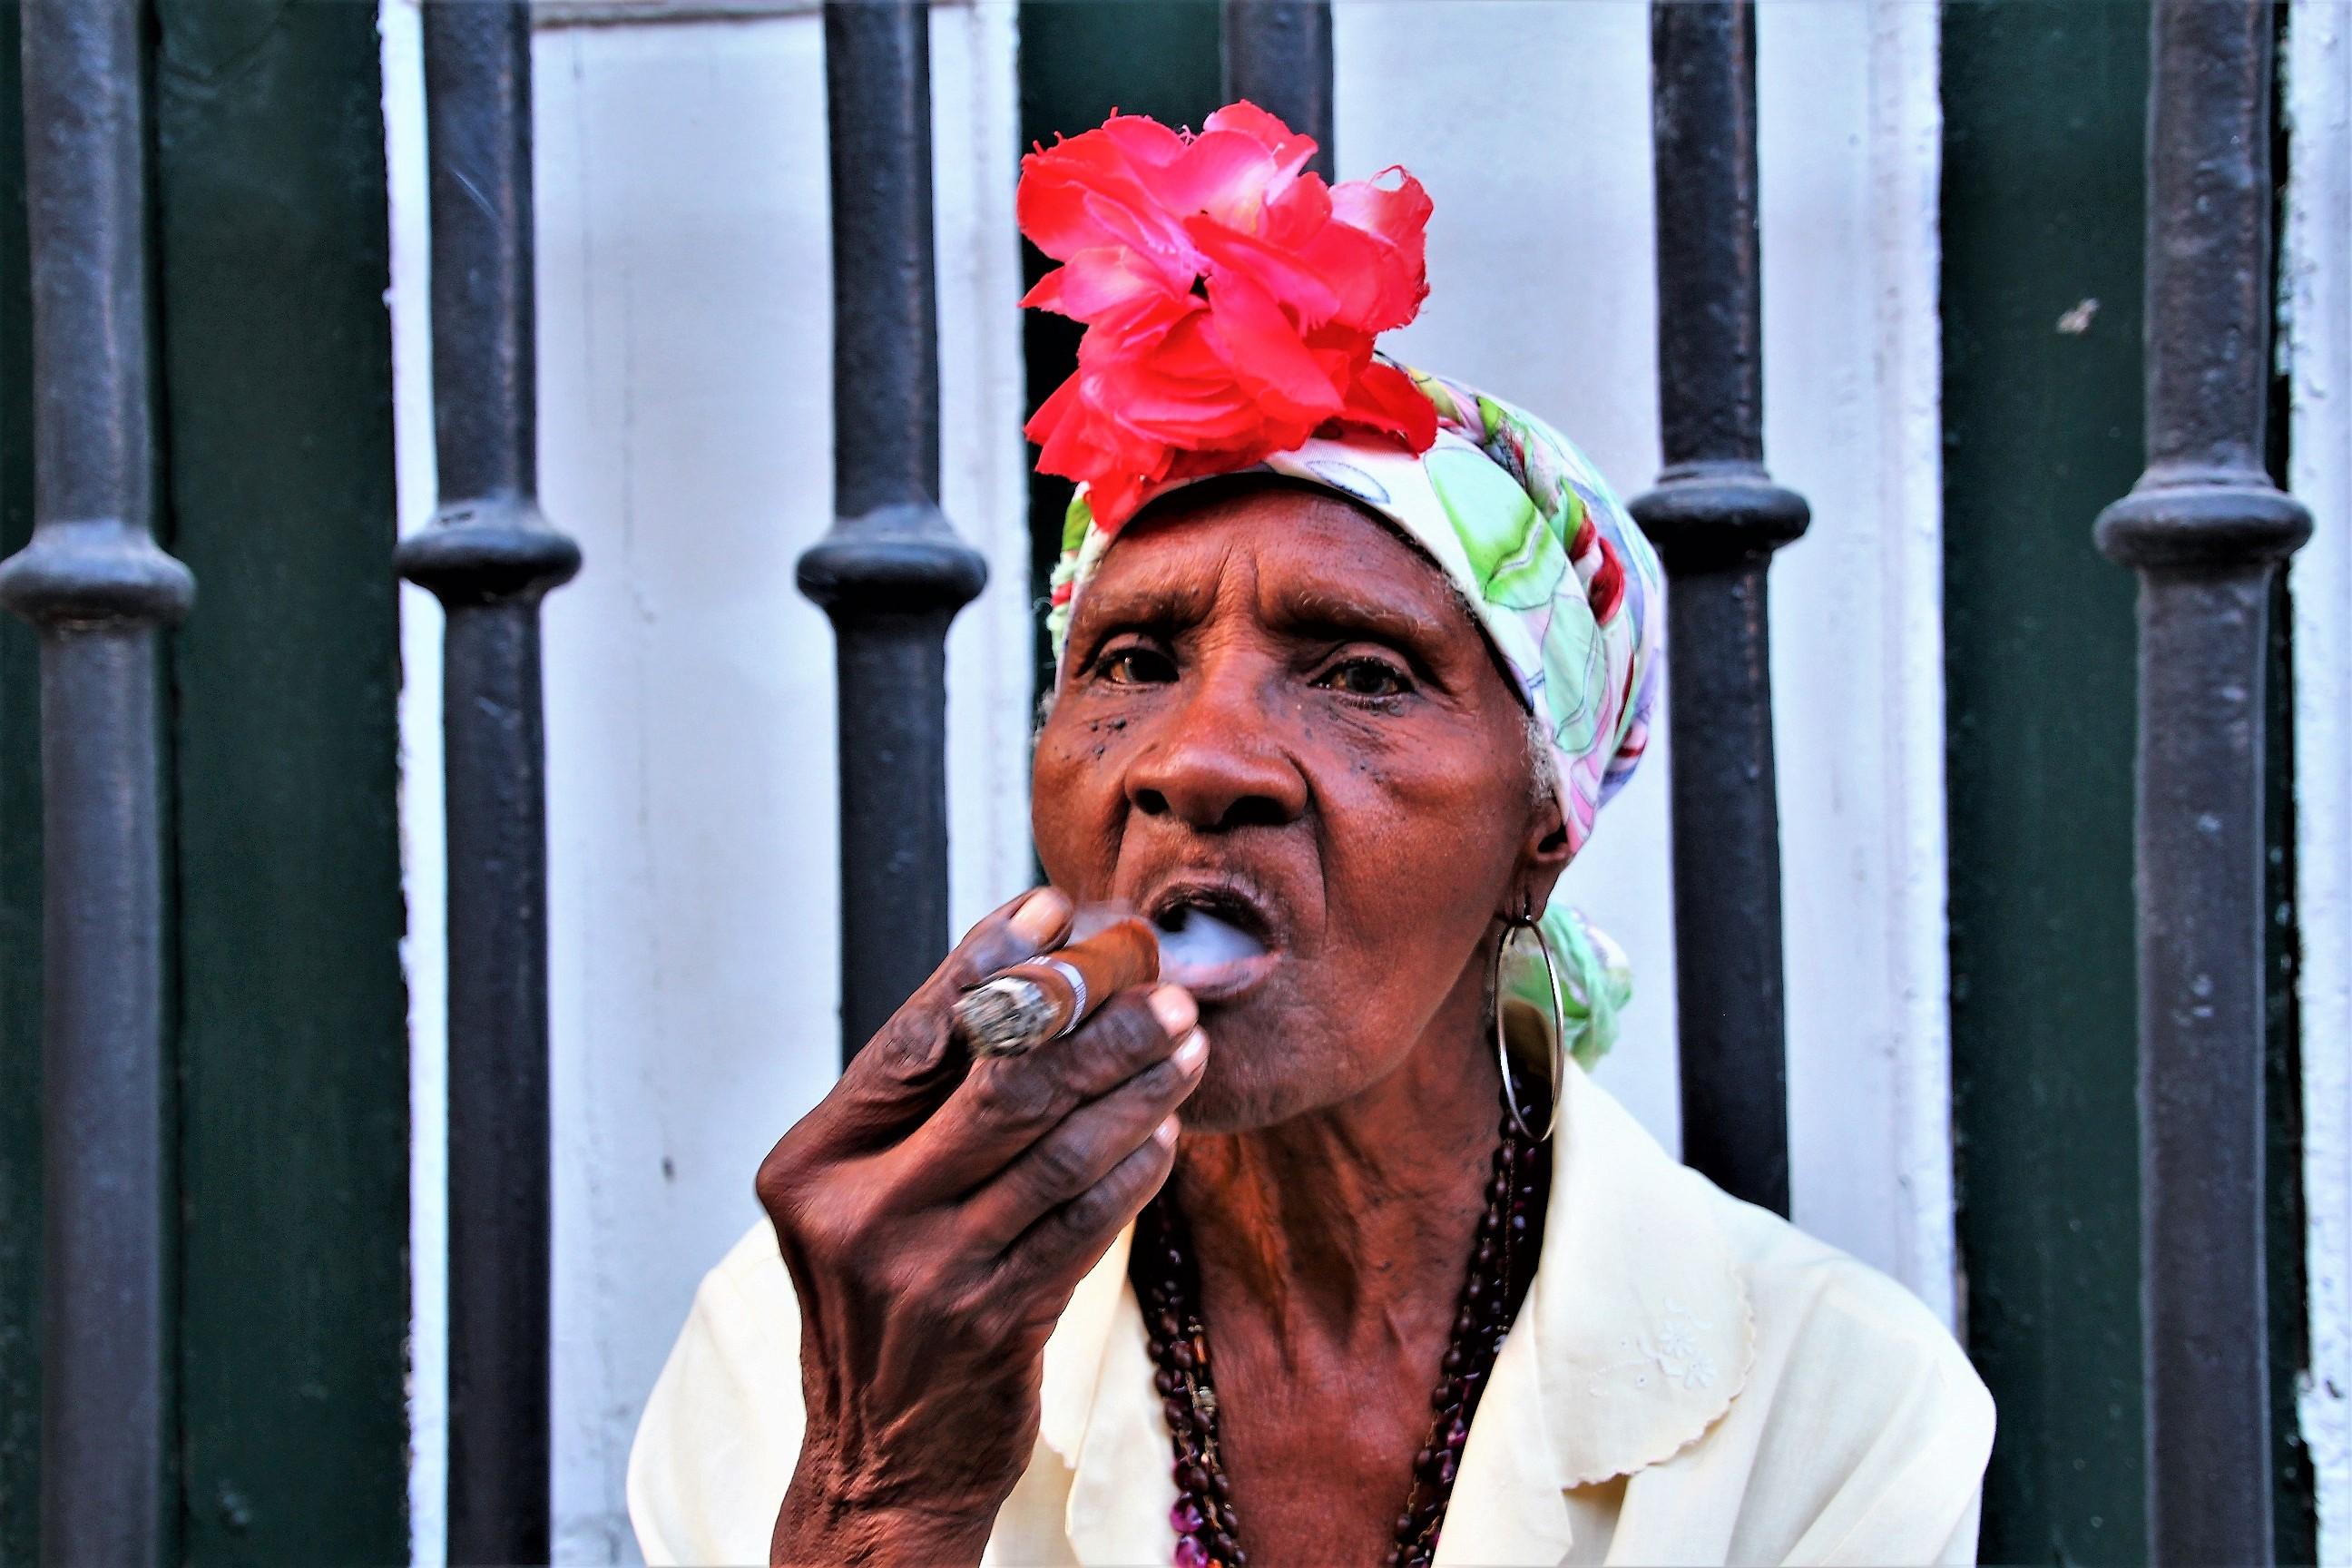 Lady smoking cigar, Old Havana, Cuba - Things to know about Cuba before you go - Crooked Compass